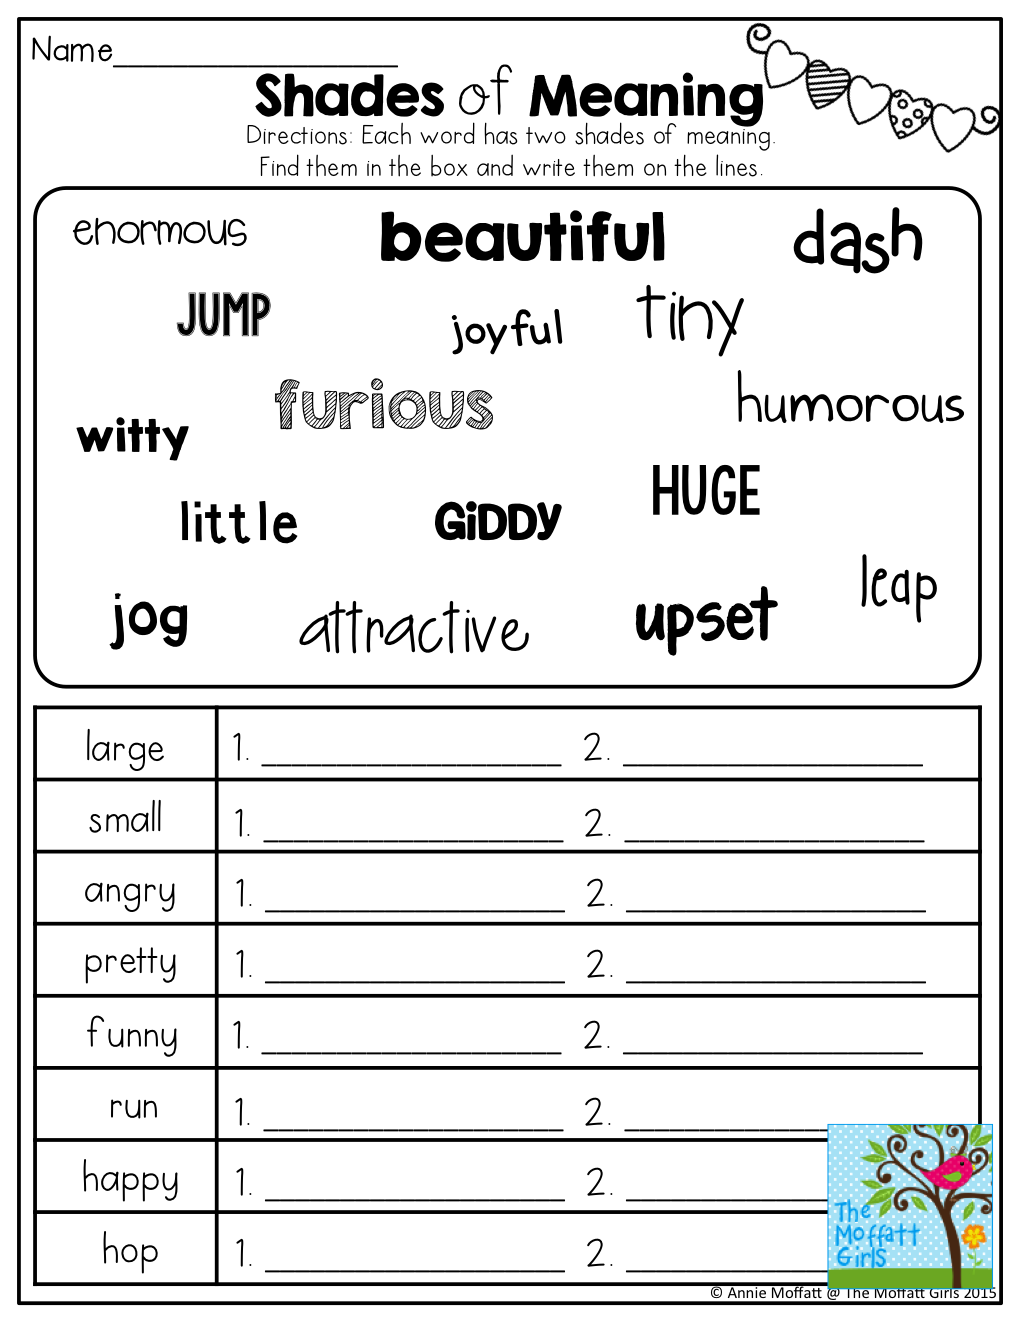 3rd Grade Vocabulary Worksheets Printable : Shades of meaning tons other great printables best